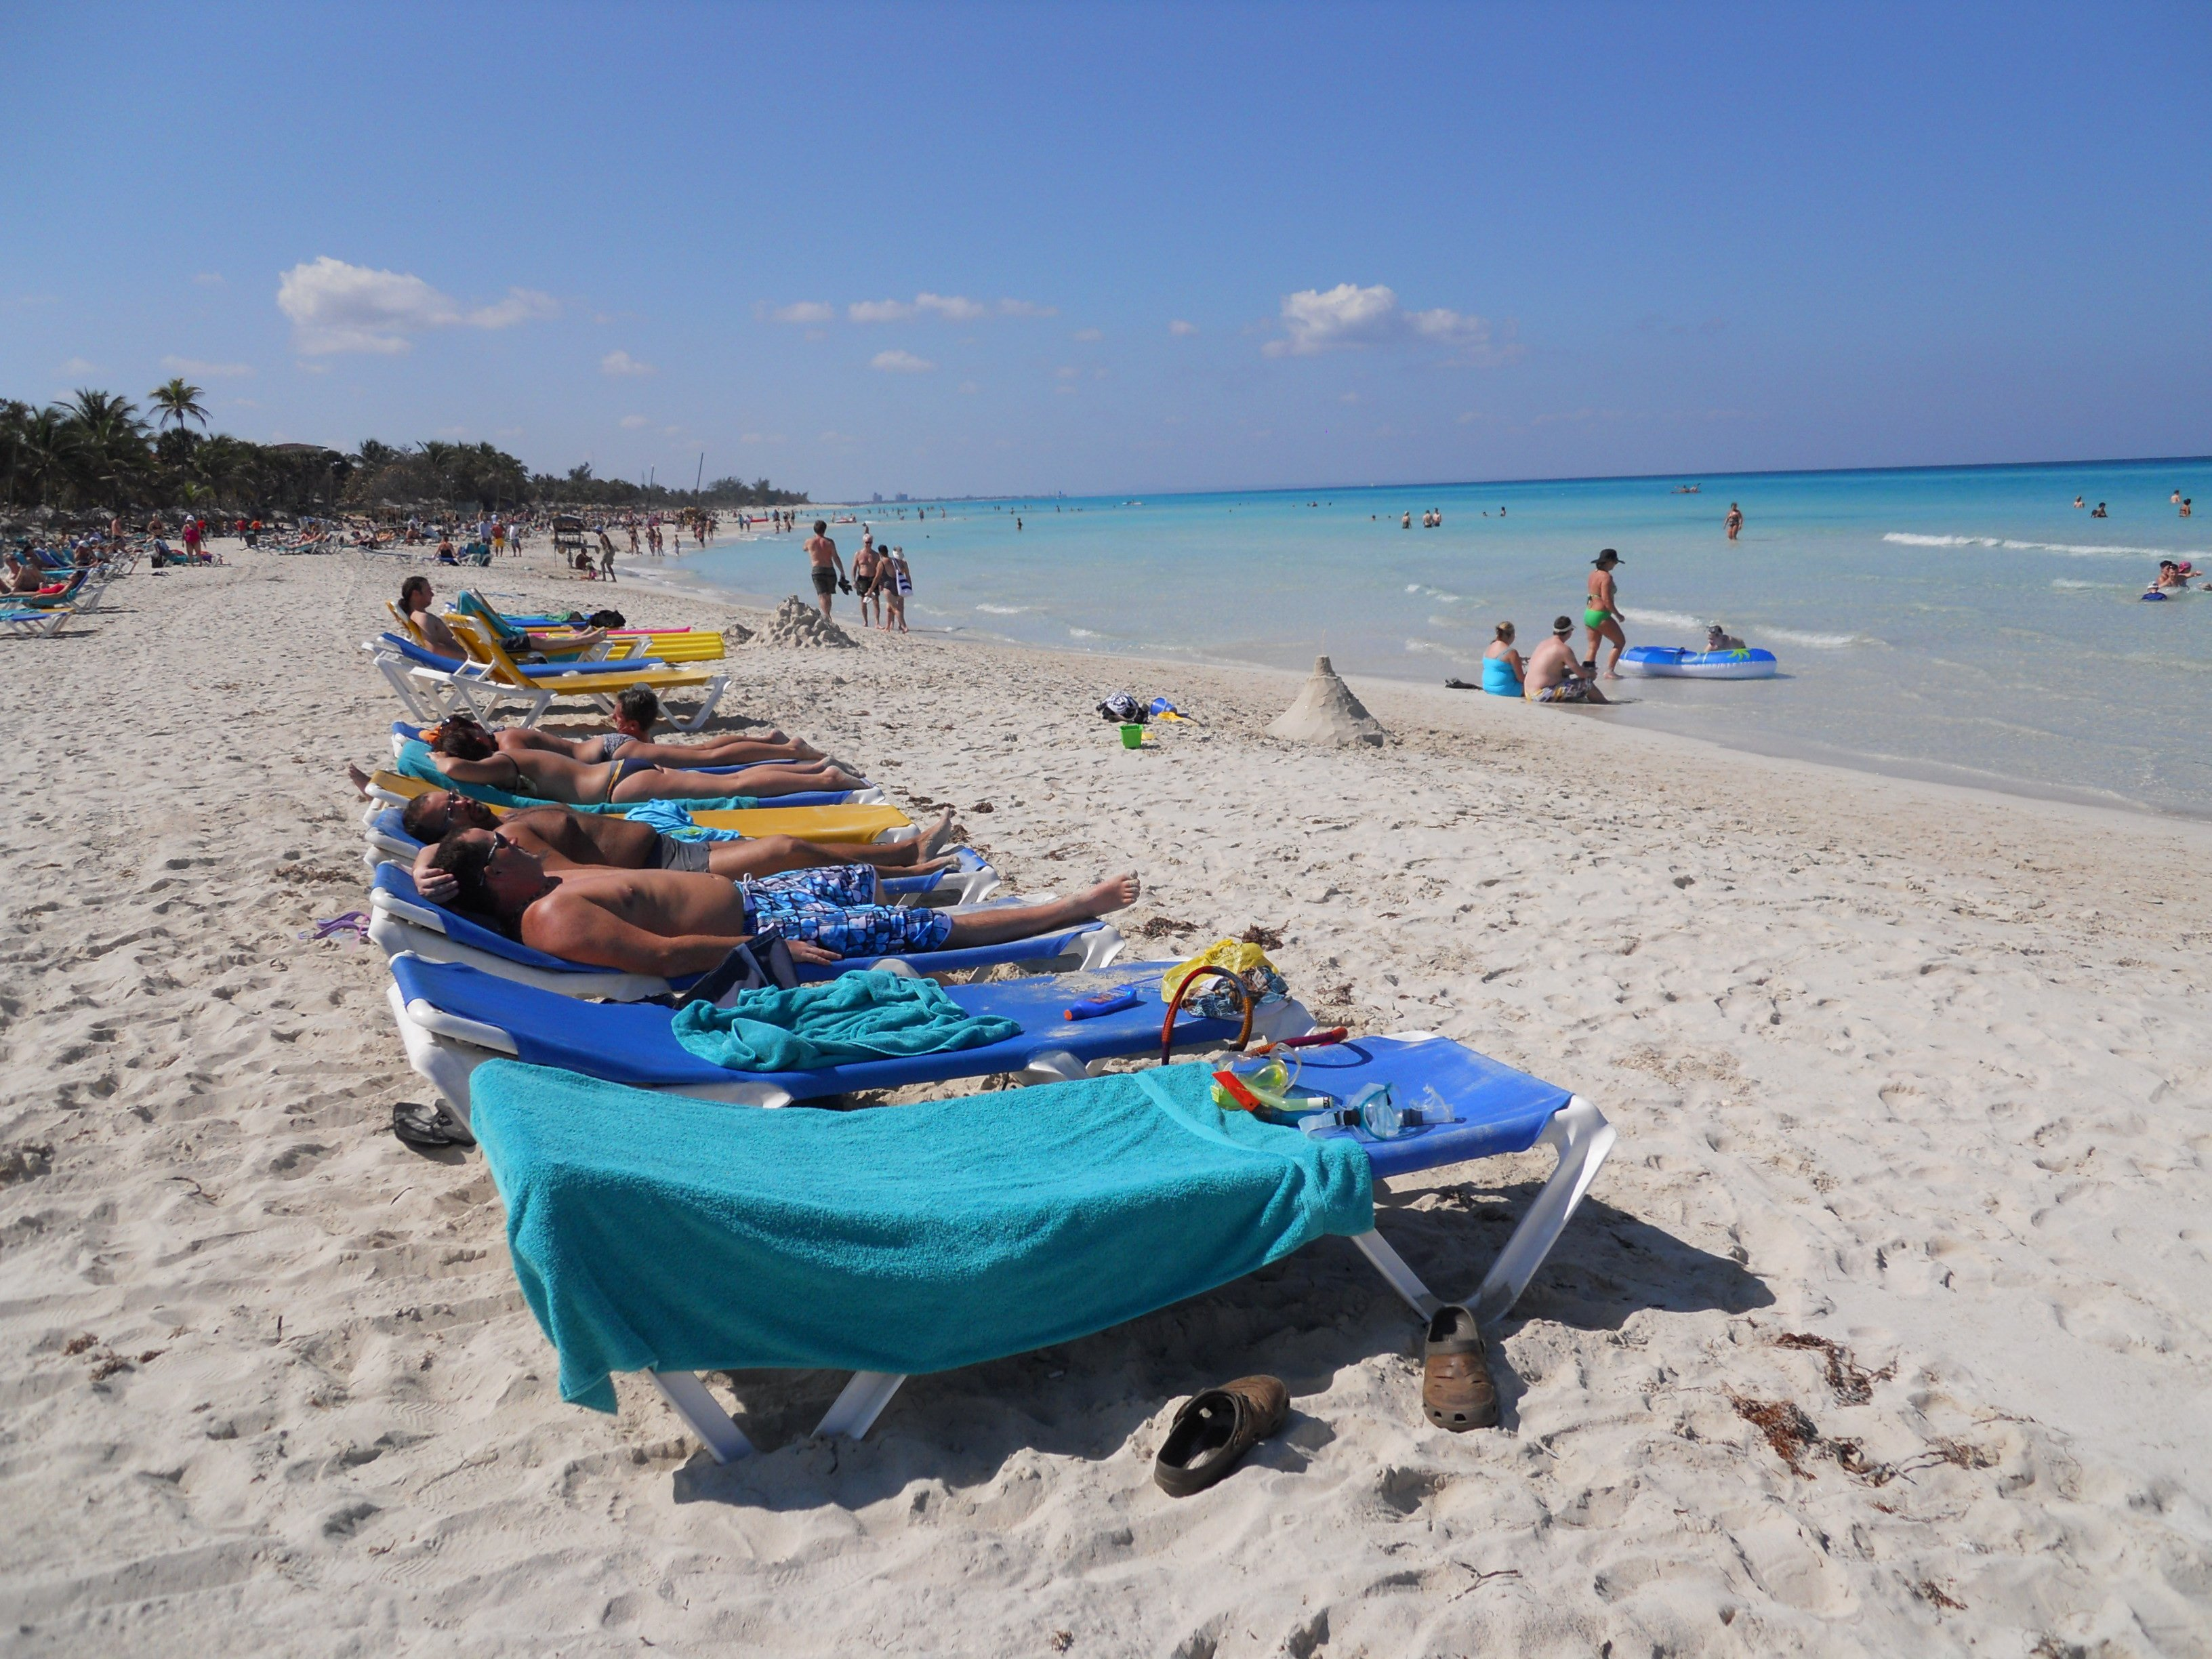 Located 144 Km 90 Mi East Of Havana This Resort Is Being Developed Into A First Class Holiday Spot By Joint Ventures Between The Cuban Government And